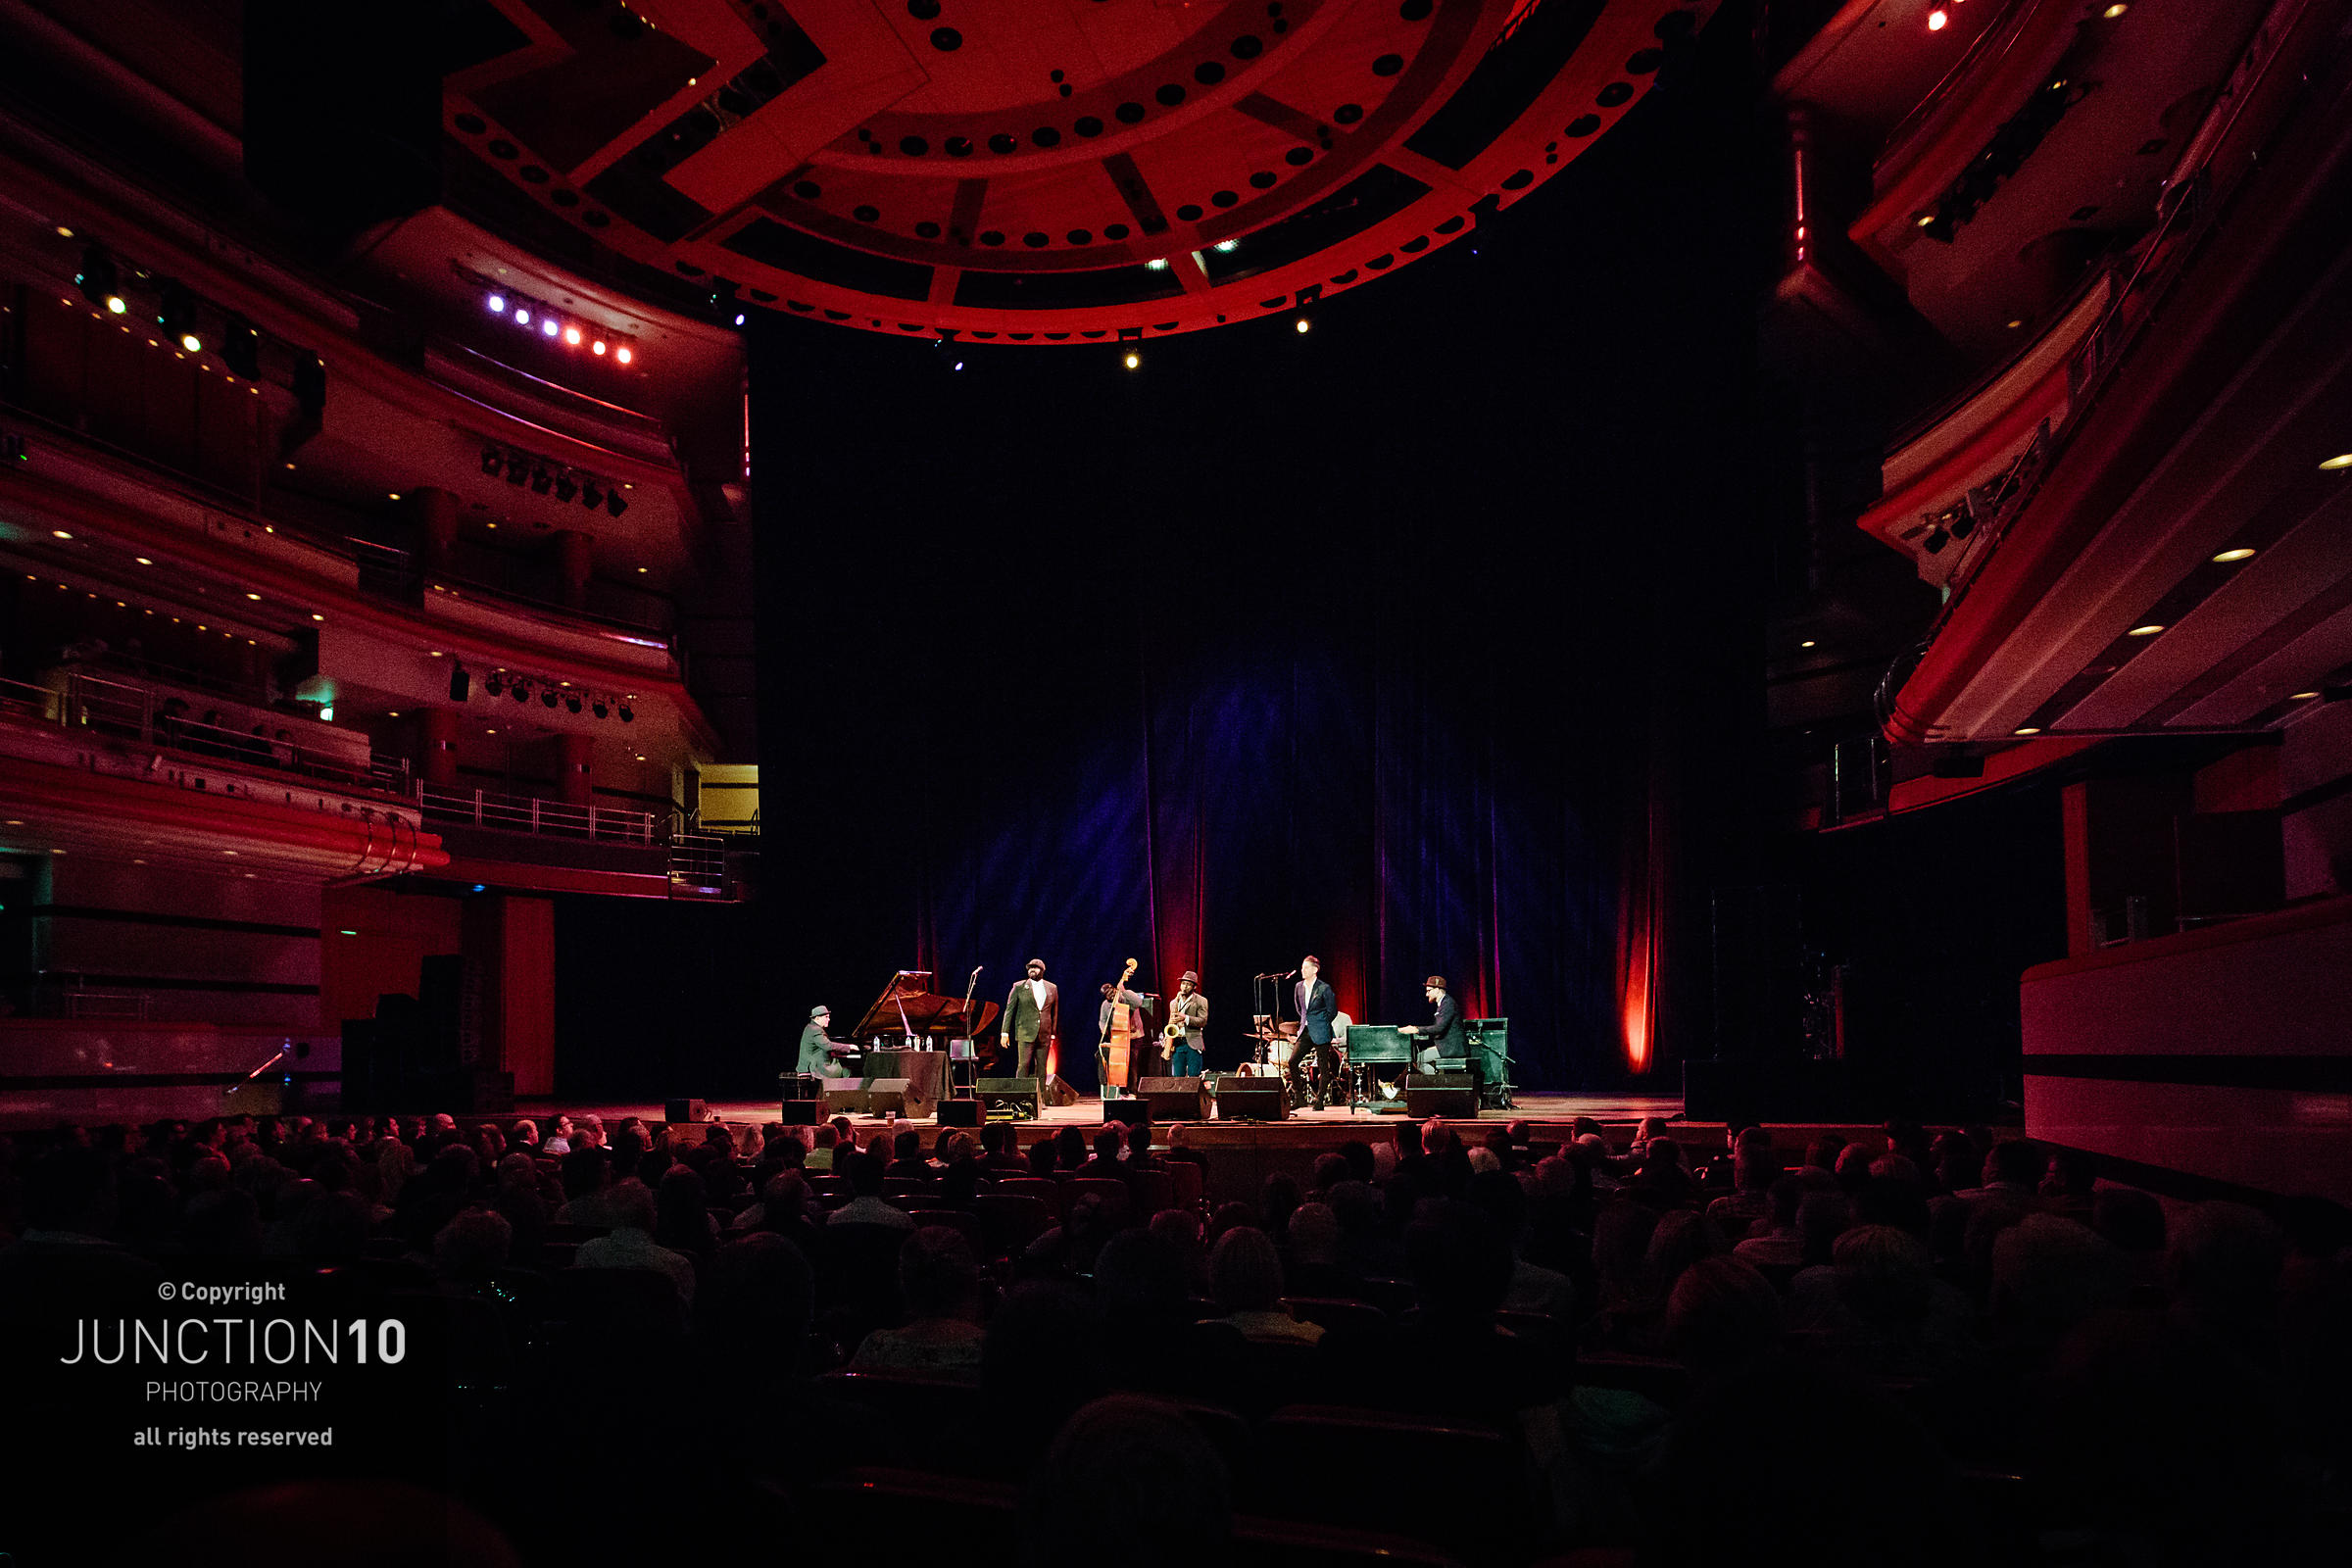 Gregory Porter, Birmingham, United Kingdom